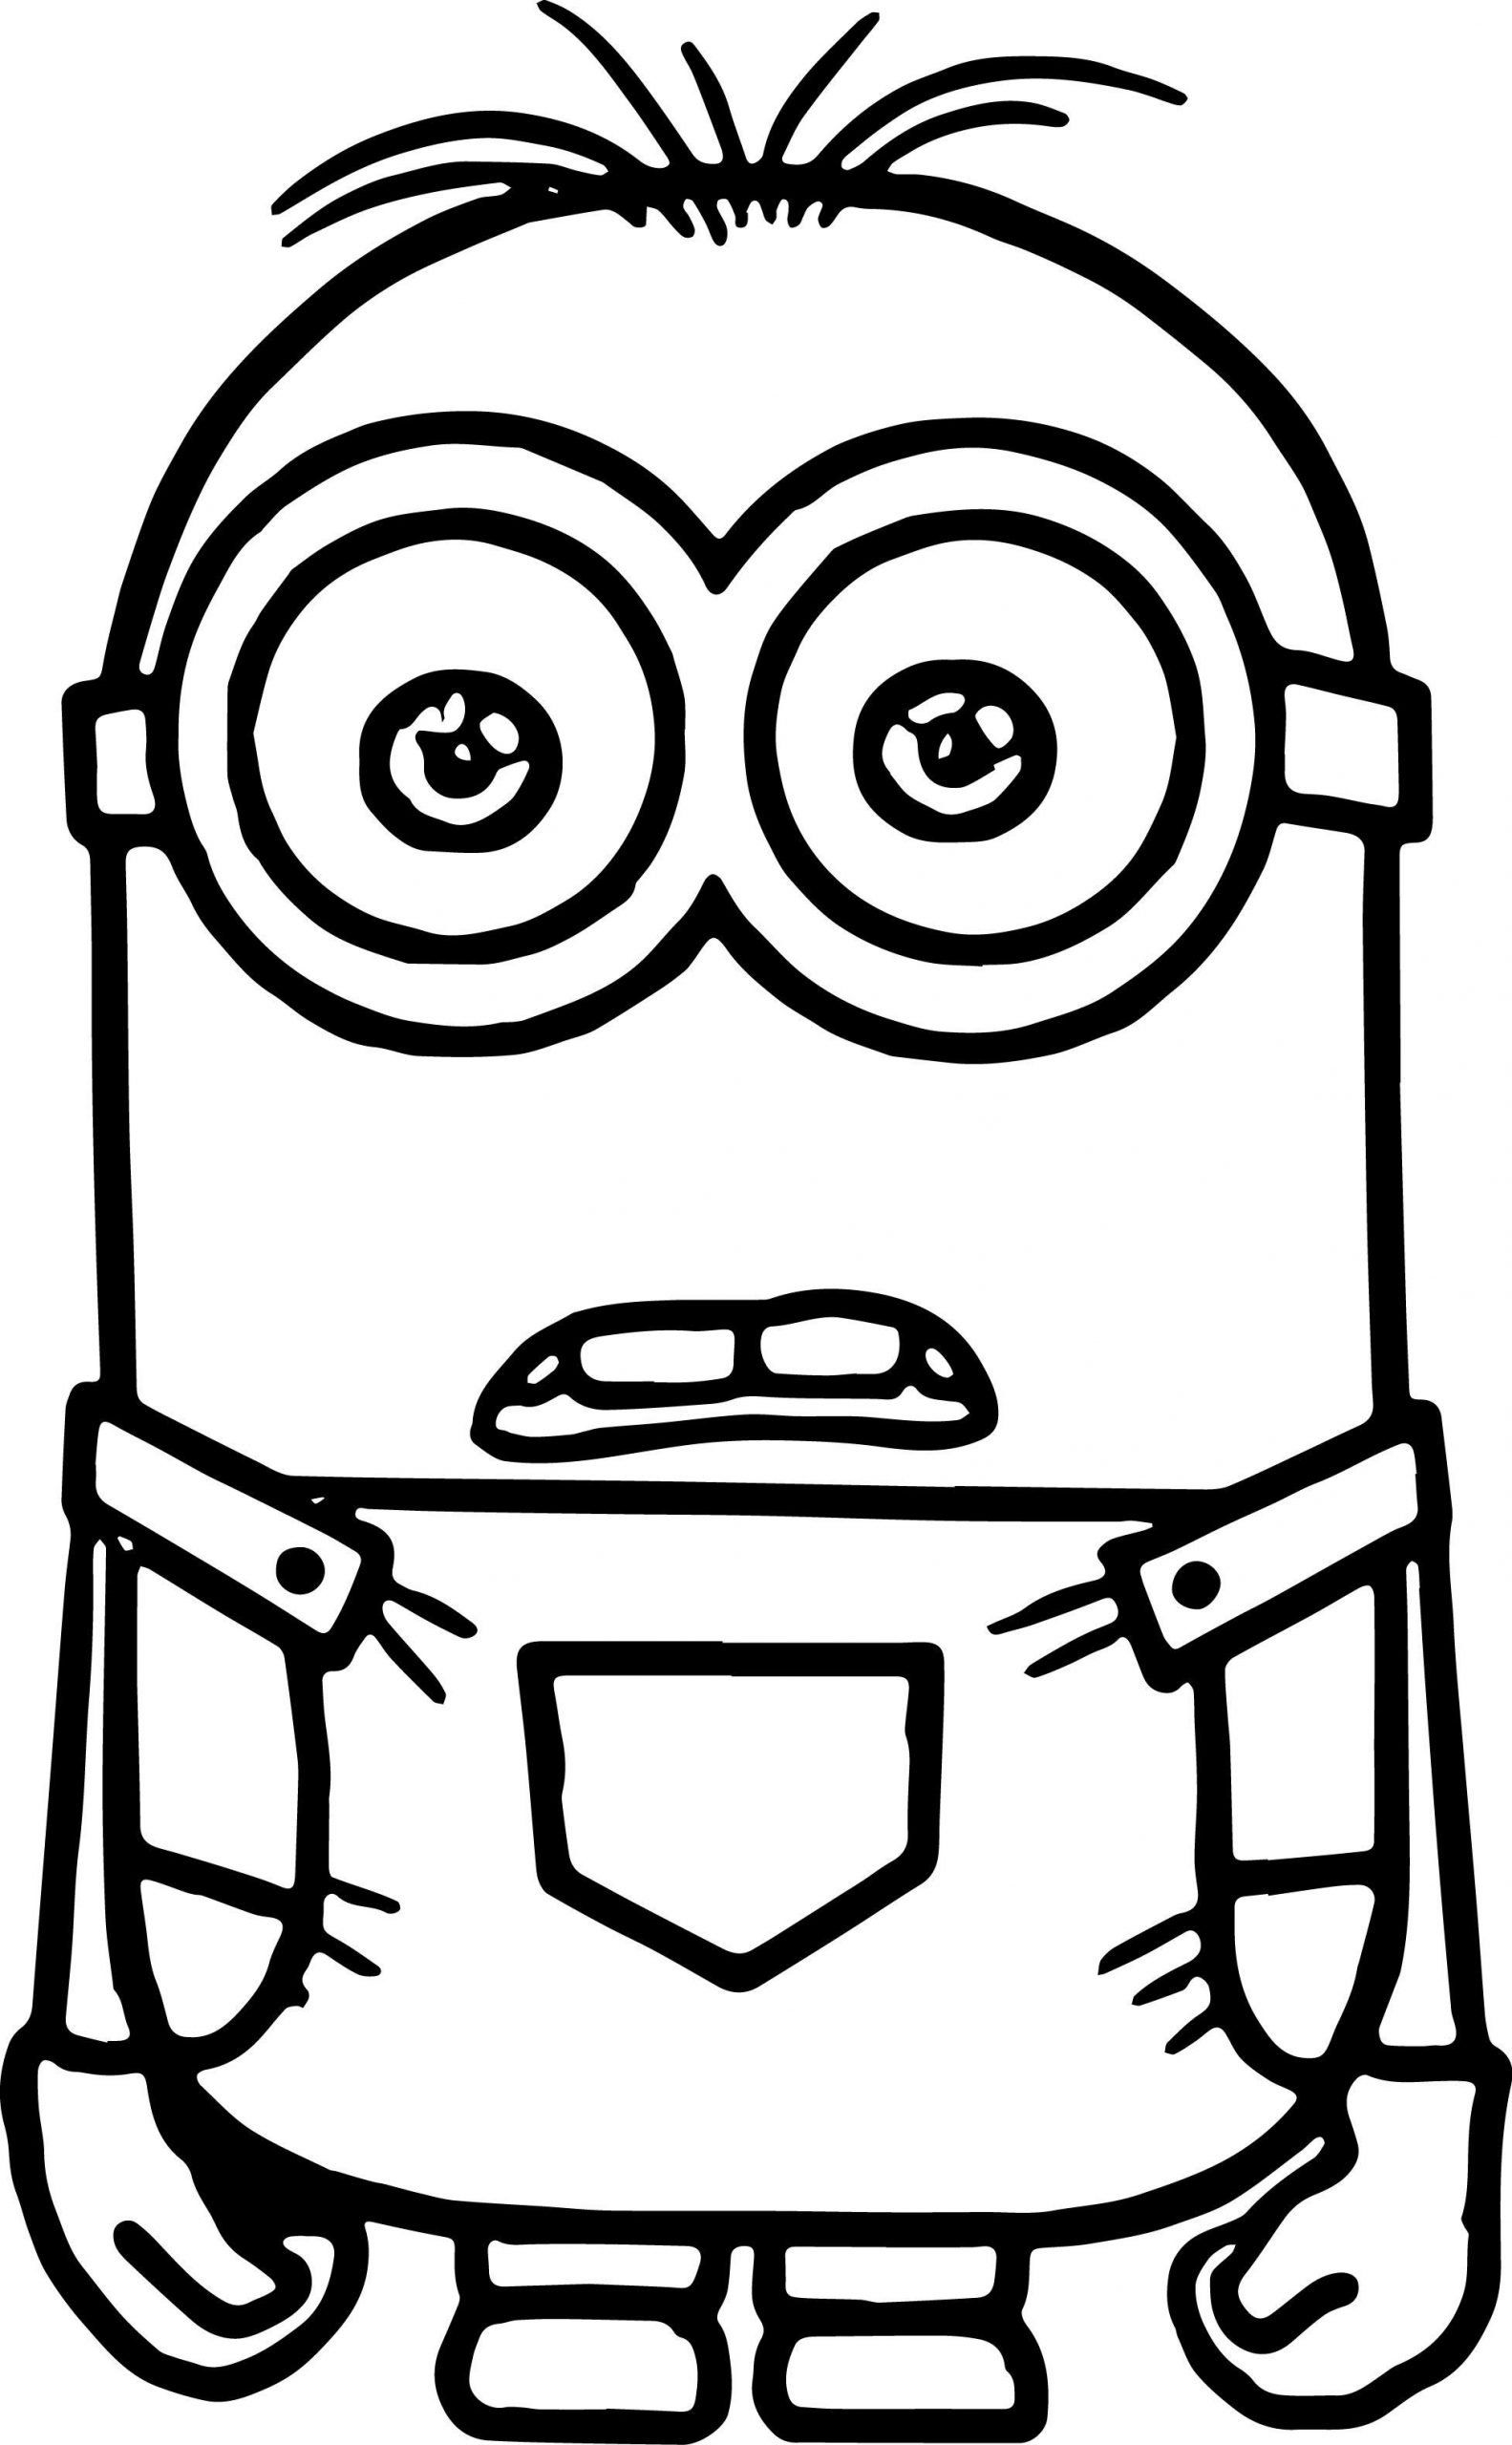 Minion Halloween Coloring Pages Free Coloring Pages Of Minions Halloween With Images In 2020 Minion Coloring Pages Minions Coloring Pages Disney Coloring Pages